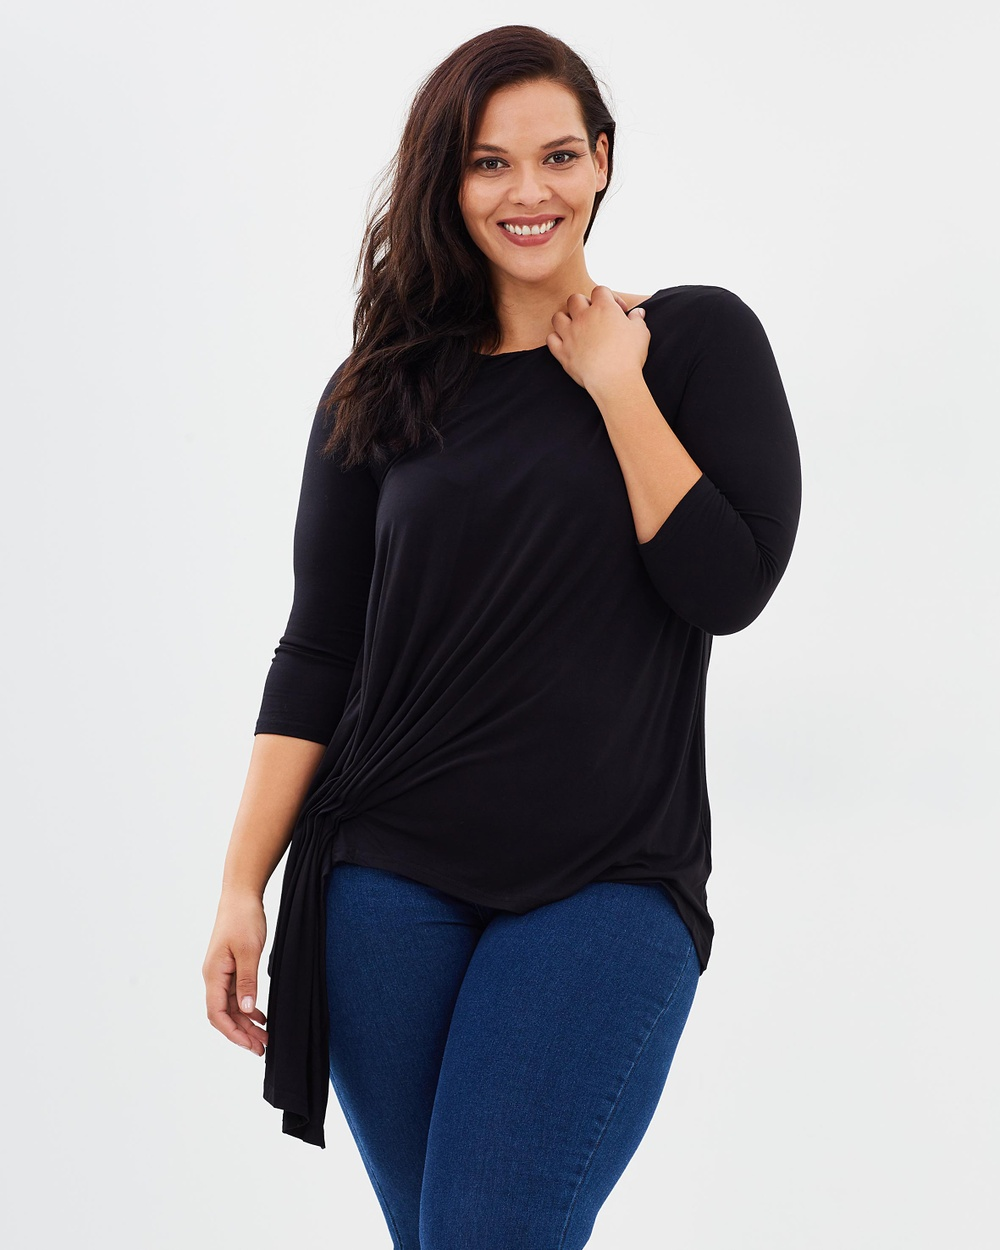 Studio 8 Coralie Top Tops Black Coralie Top